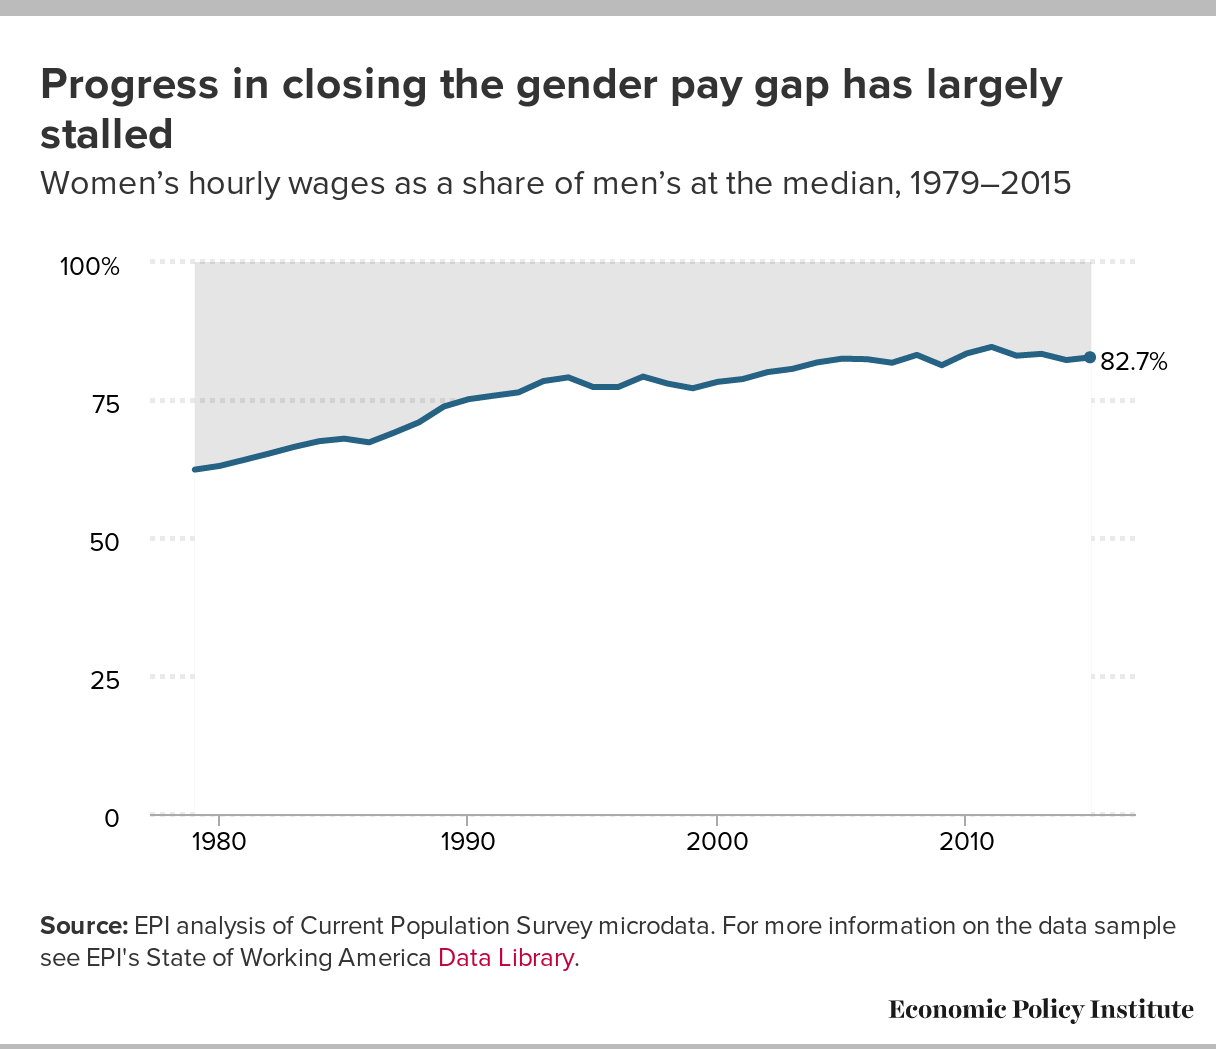 Progress in closing the gender pay gap has largely stalled